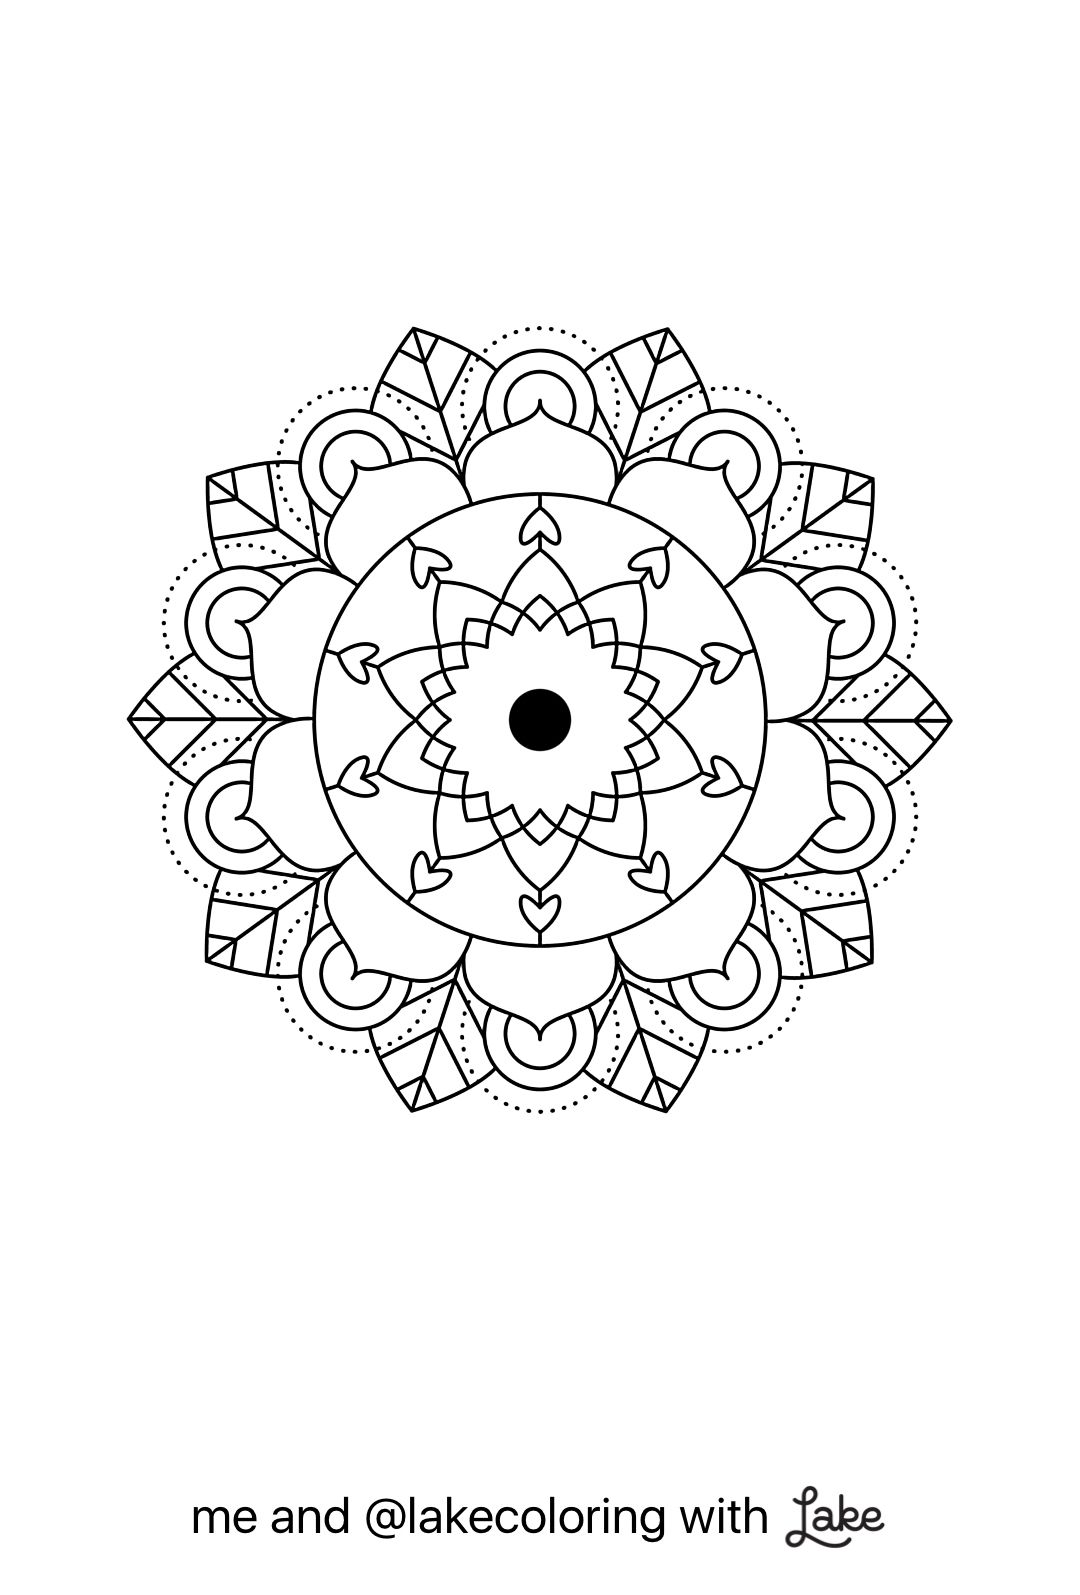 Coloring pages app - Coloring Page From Lake Coloring App